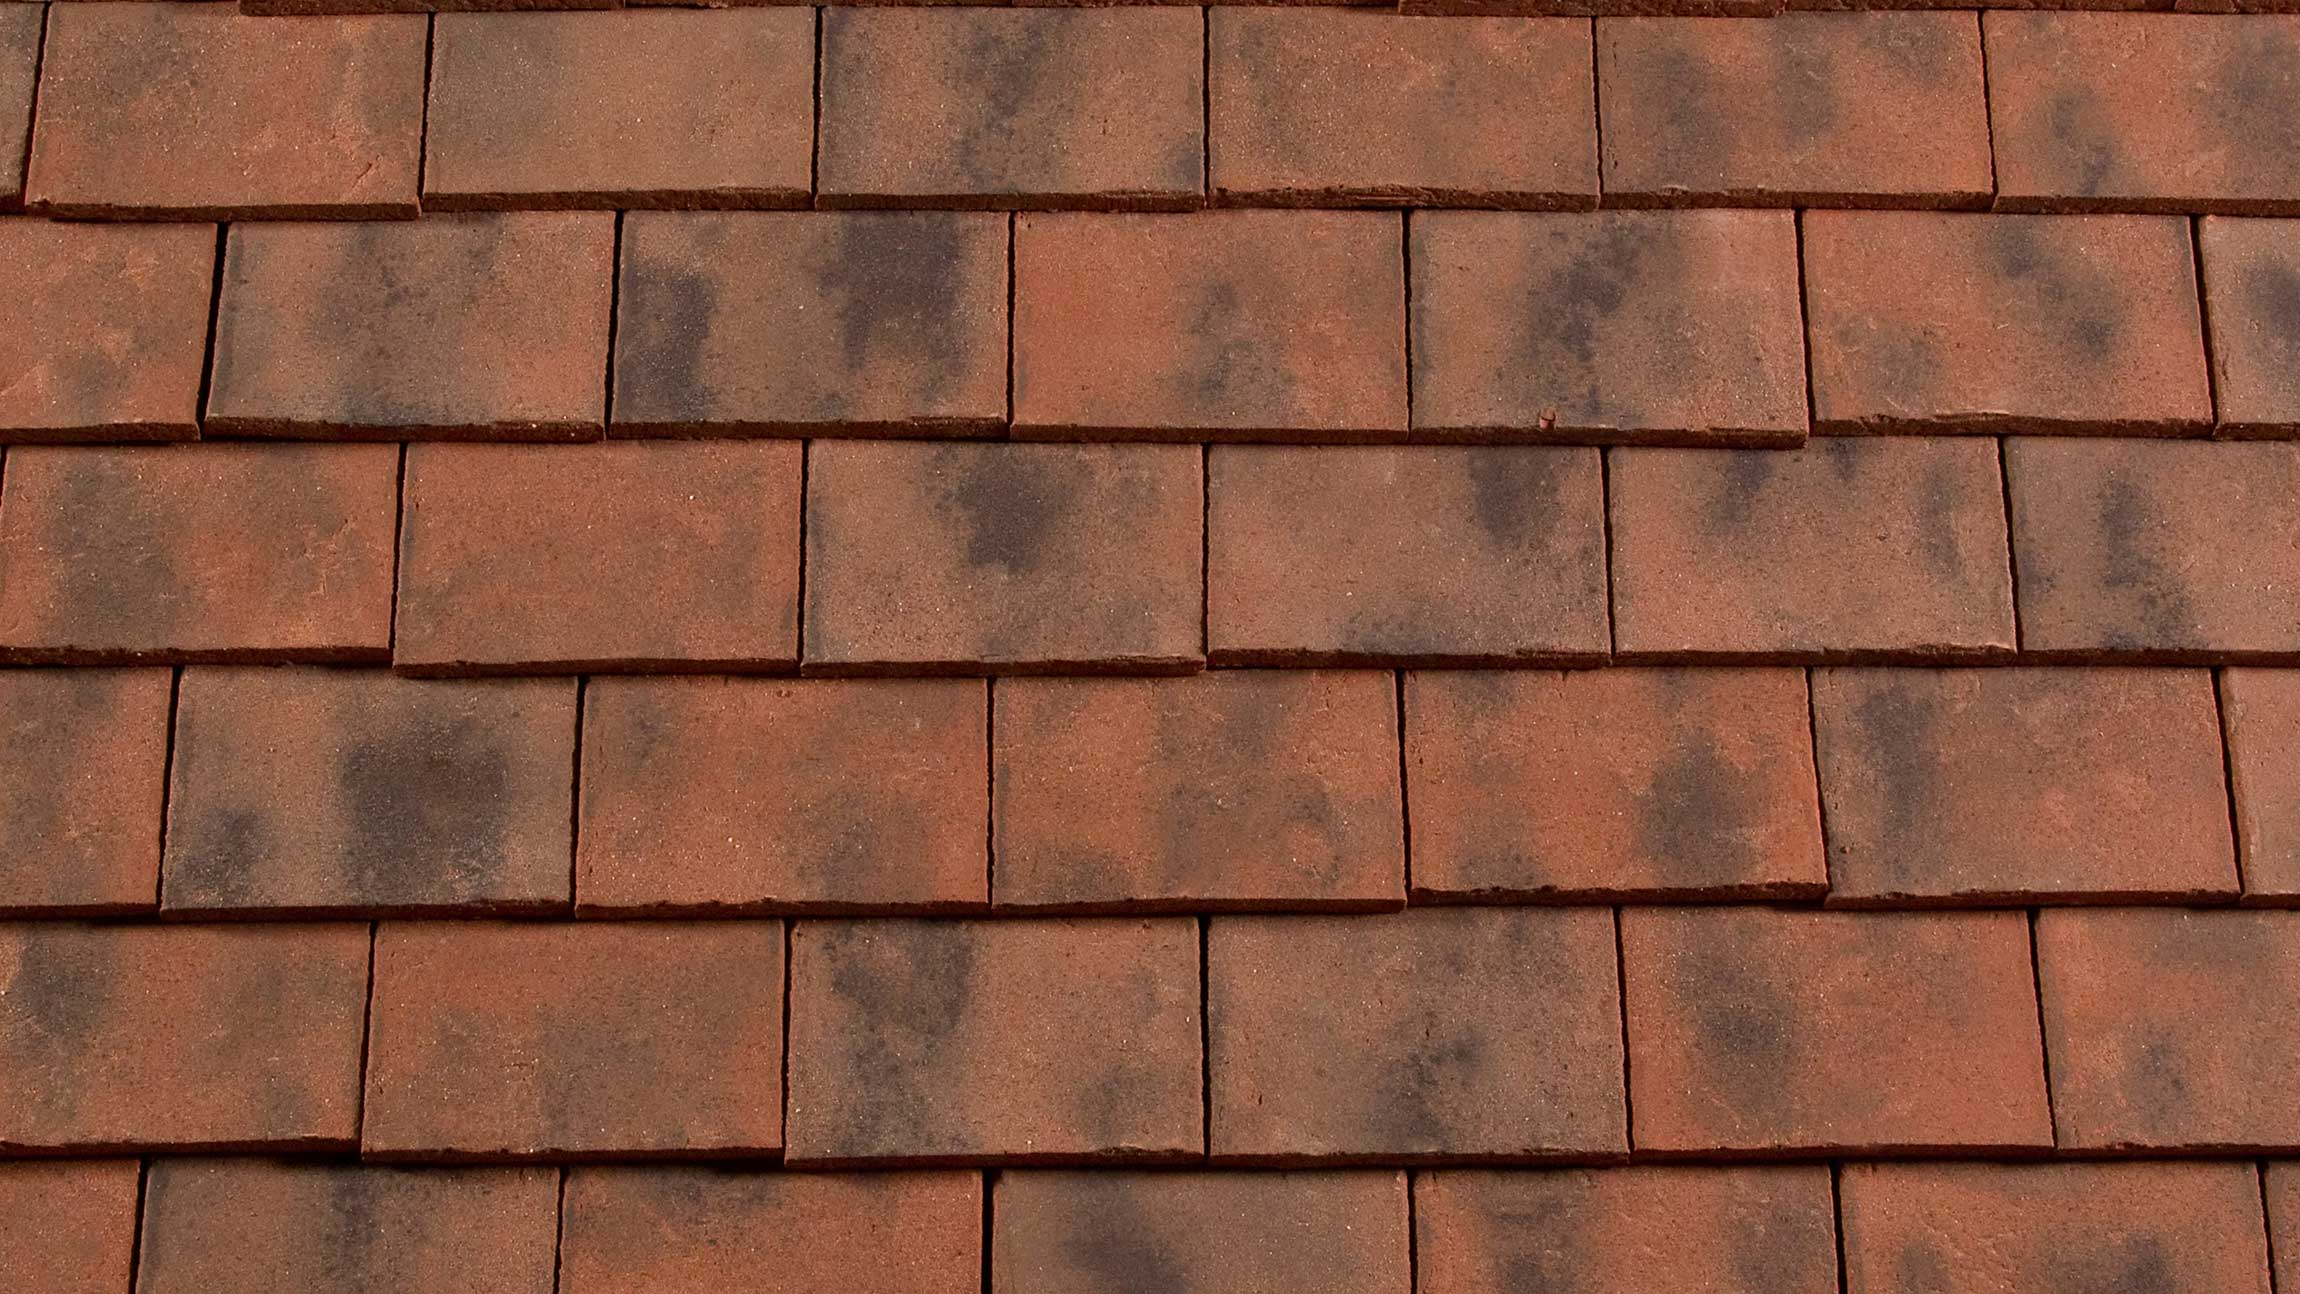 Roofing Products Redland Plain Clay Craftsman Tiles Jpg